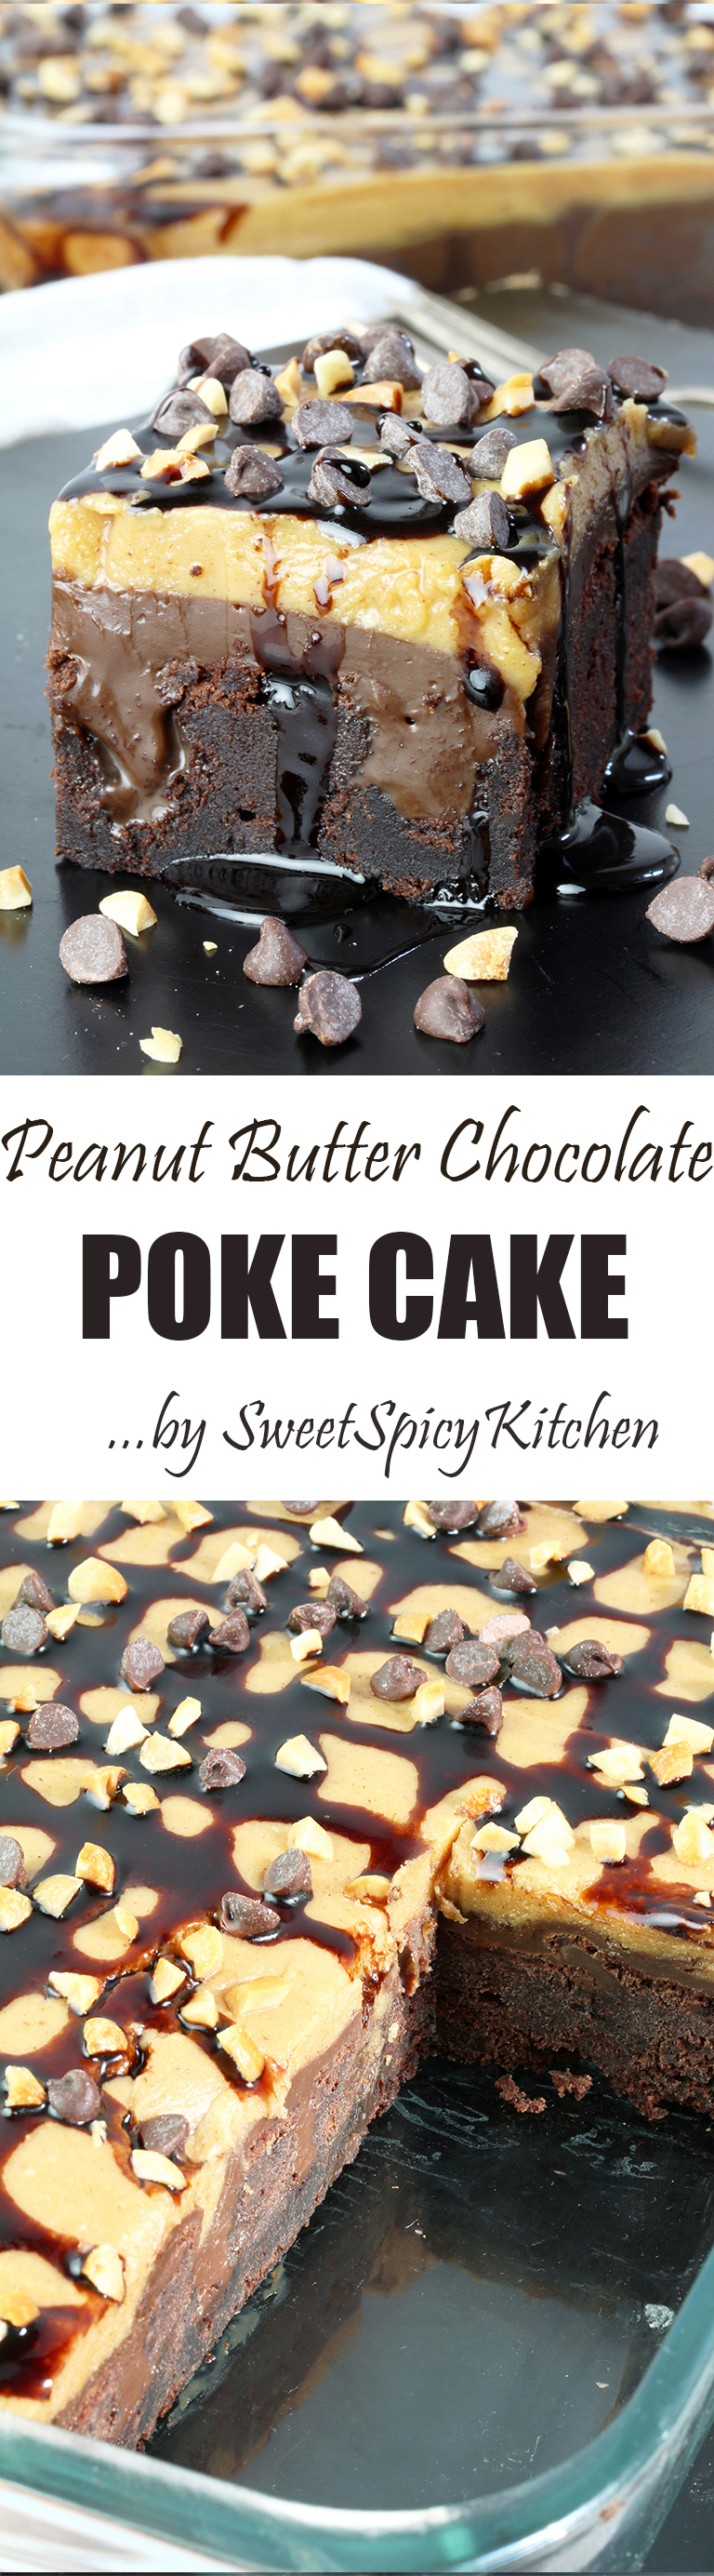 Here is the recipe for perfectly tasty Peanut Butter Chocolate Poke Cake. It takes a special place in my cookbook